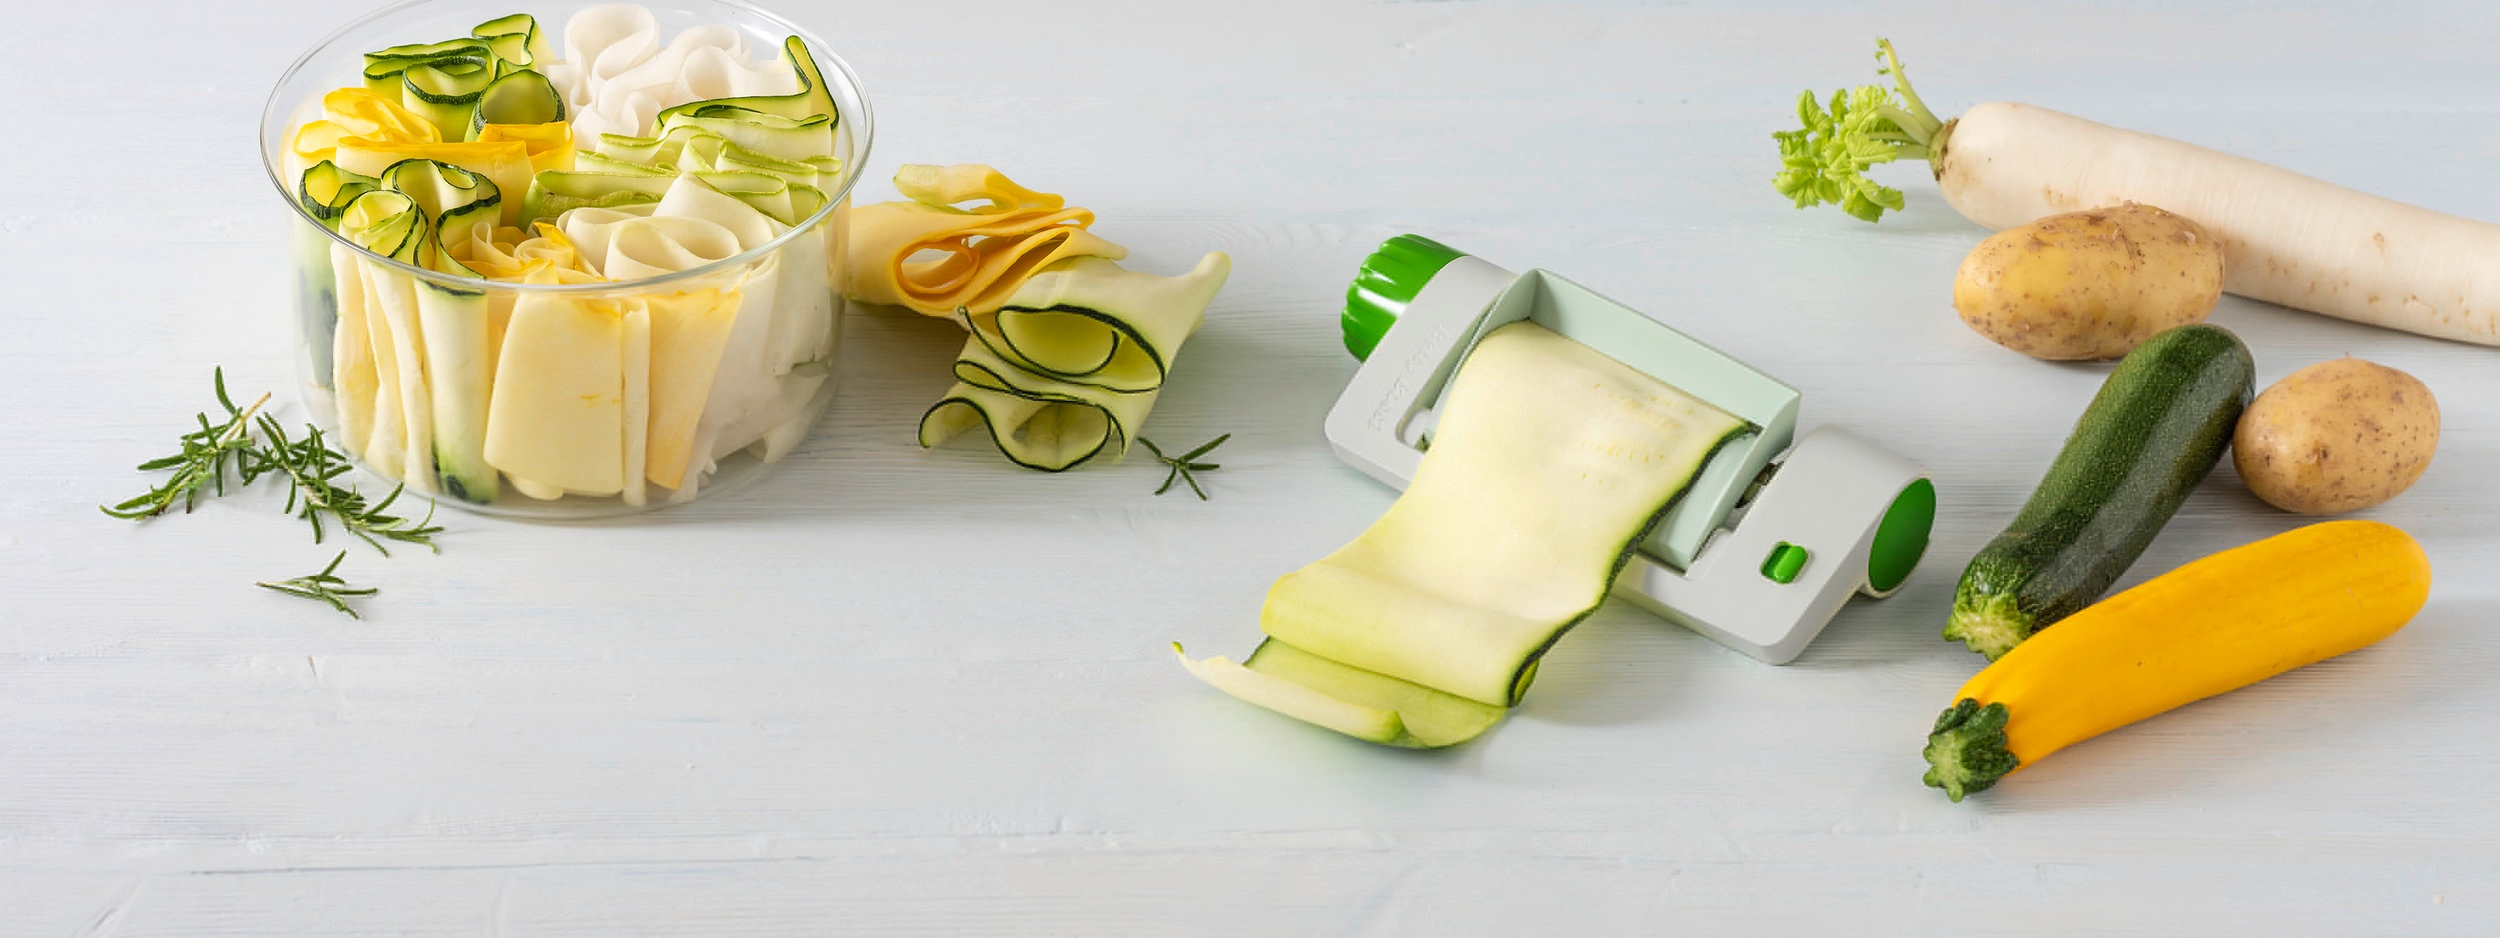 BB155024_Veggie+Sheet+Slicer_Lifestyle+%2815%29.jpg